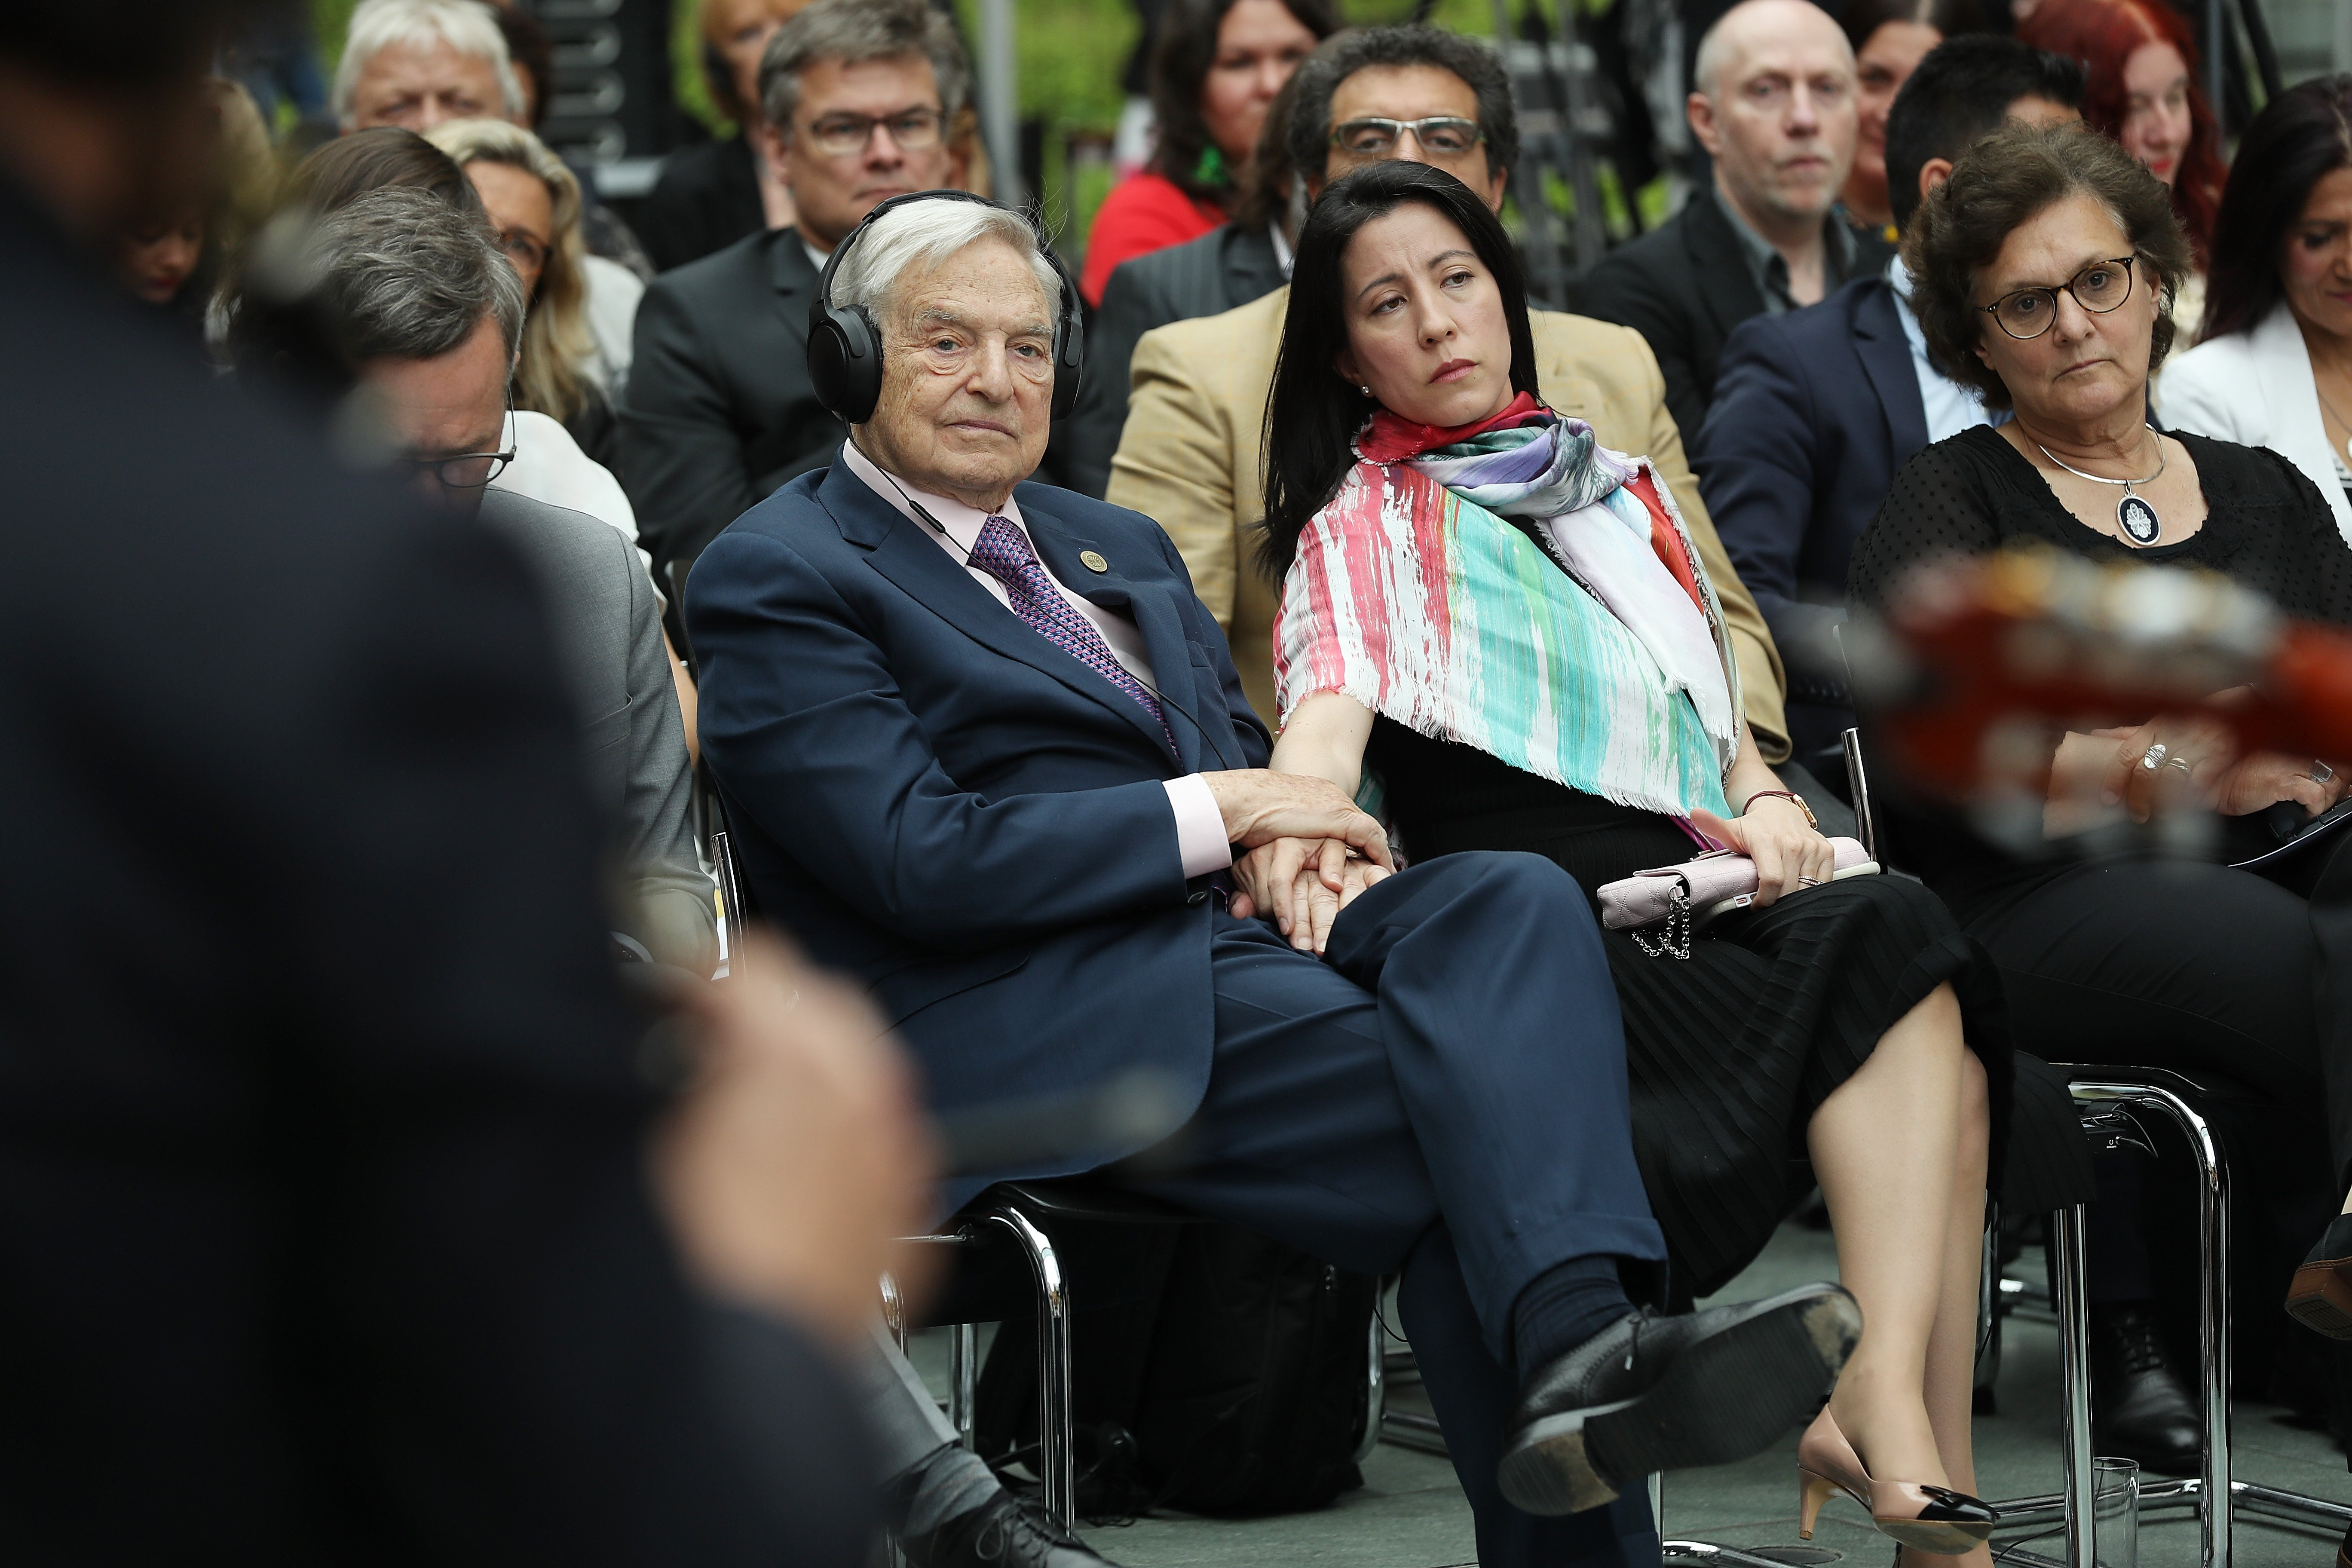 BERLIN, GERMANY - JUNE 08: Financier and philanthropist George Soros and his wife Tamiko Bolton attend the official opening of the European Roma Institute for Arts and Culture (ERIAC) at the German Foreign Ministry on June 8, 2017 in Berlin, Germany. The Institute, which is an initiative of the European Council, the Open Society Fund and the Alliance for the European Roma Institute for Arts and Culture, will have an administrative office in Berlin, gallery space in Venice and a liaison office in Brussels. (Photo by Sean Gallup/Getty Images)